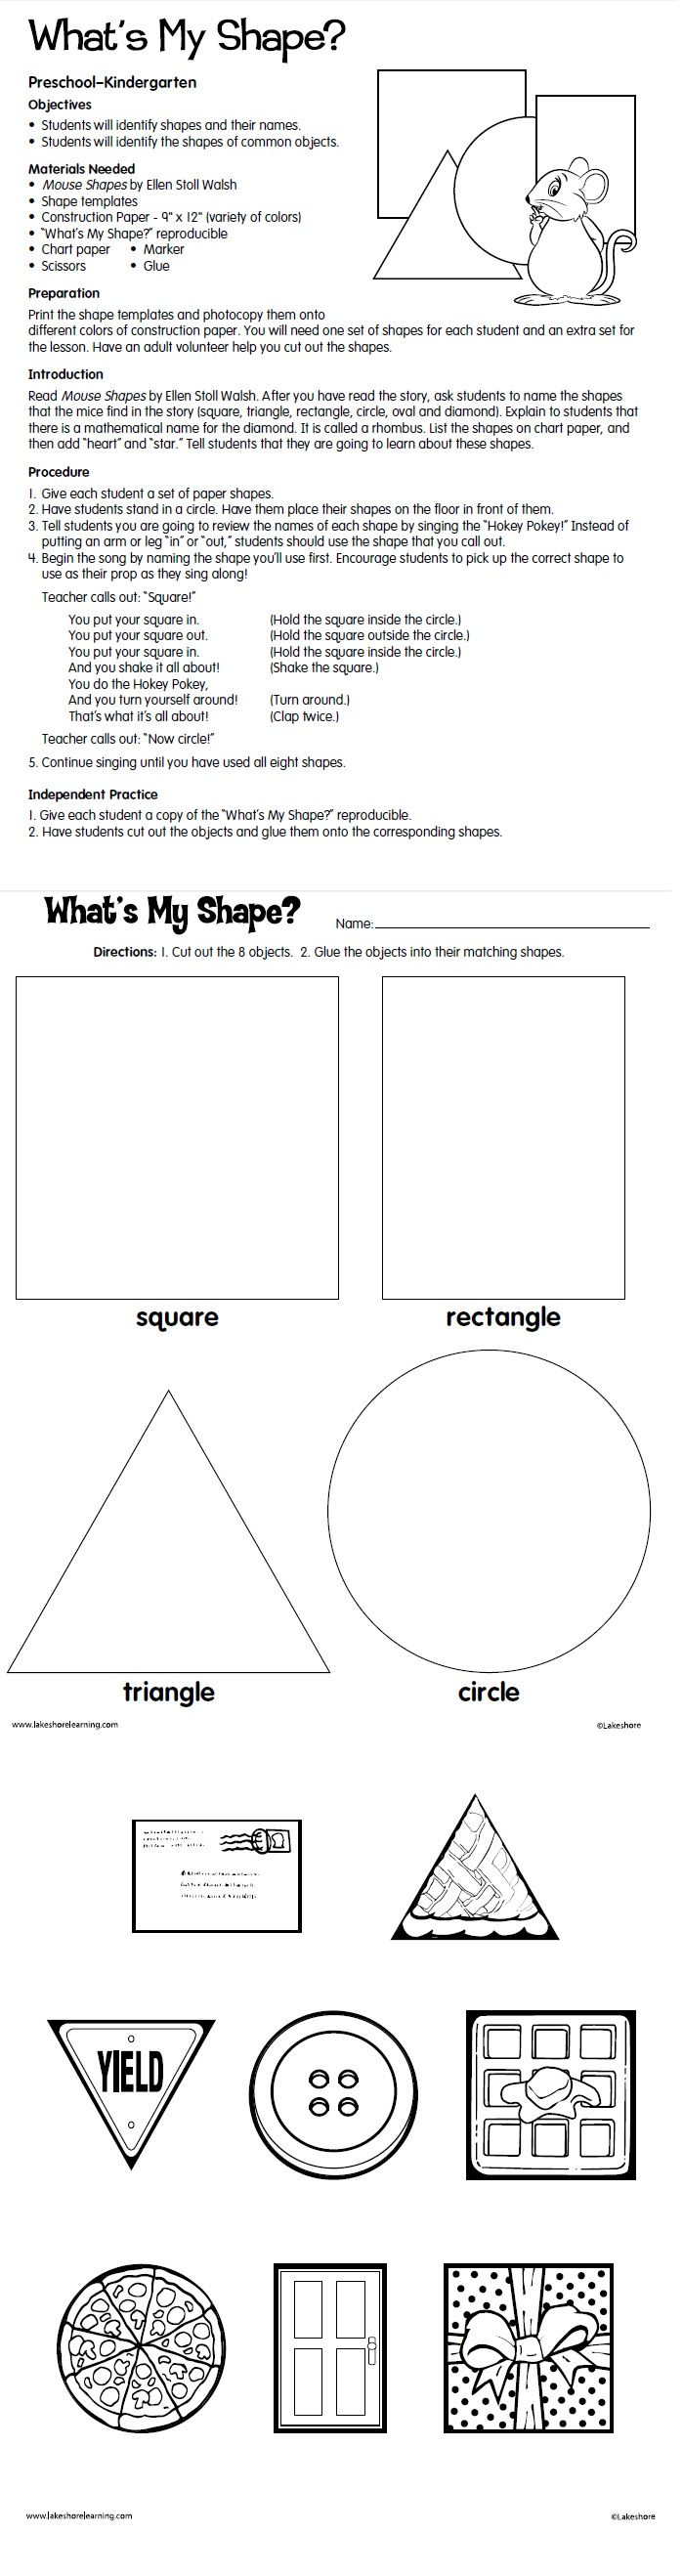 Best 25 mathematical shapes ideas on pinterest geometric whats my shape lesson plan from lakeshore learning buycottarizona